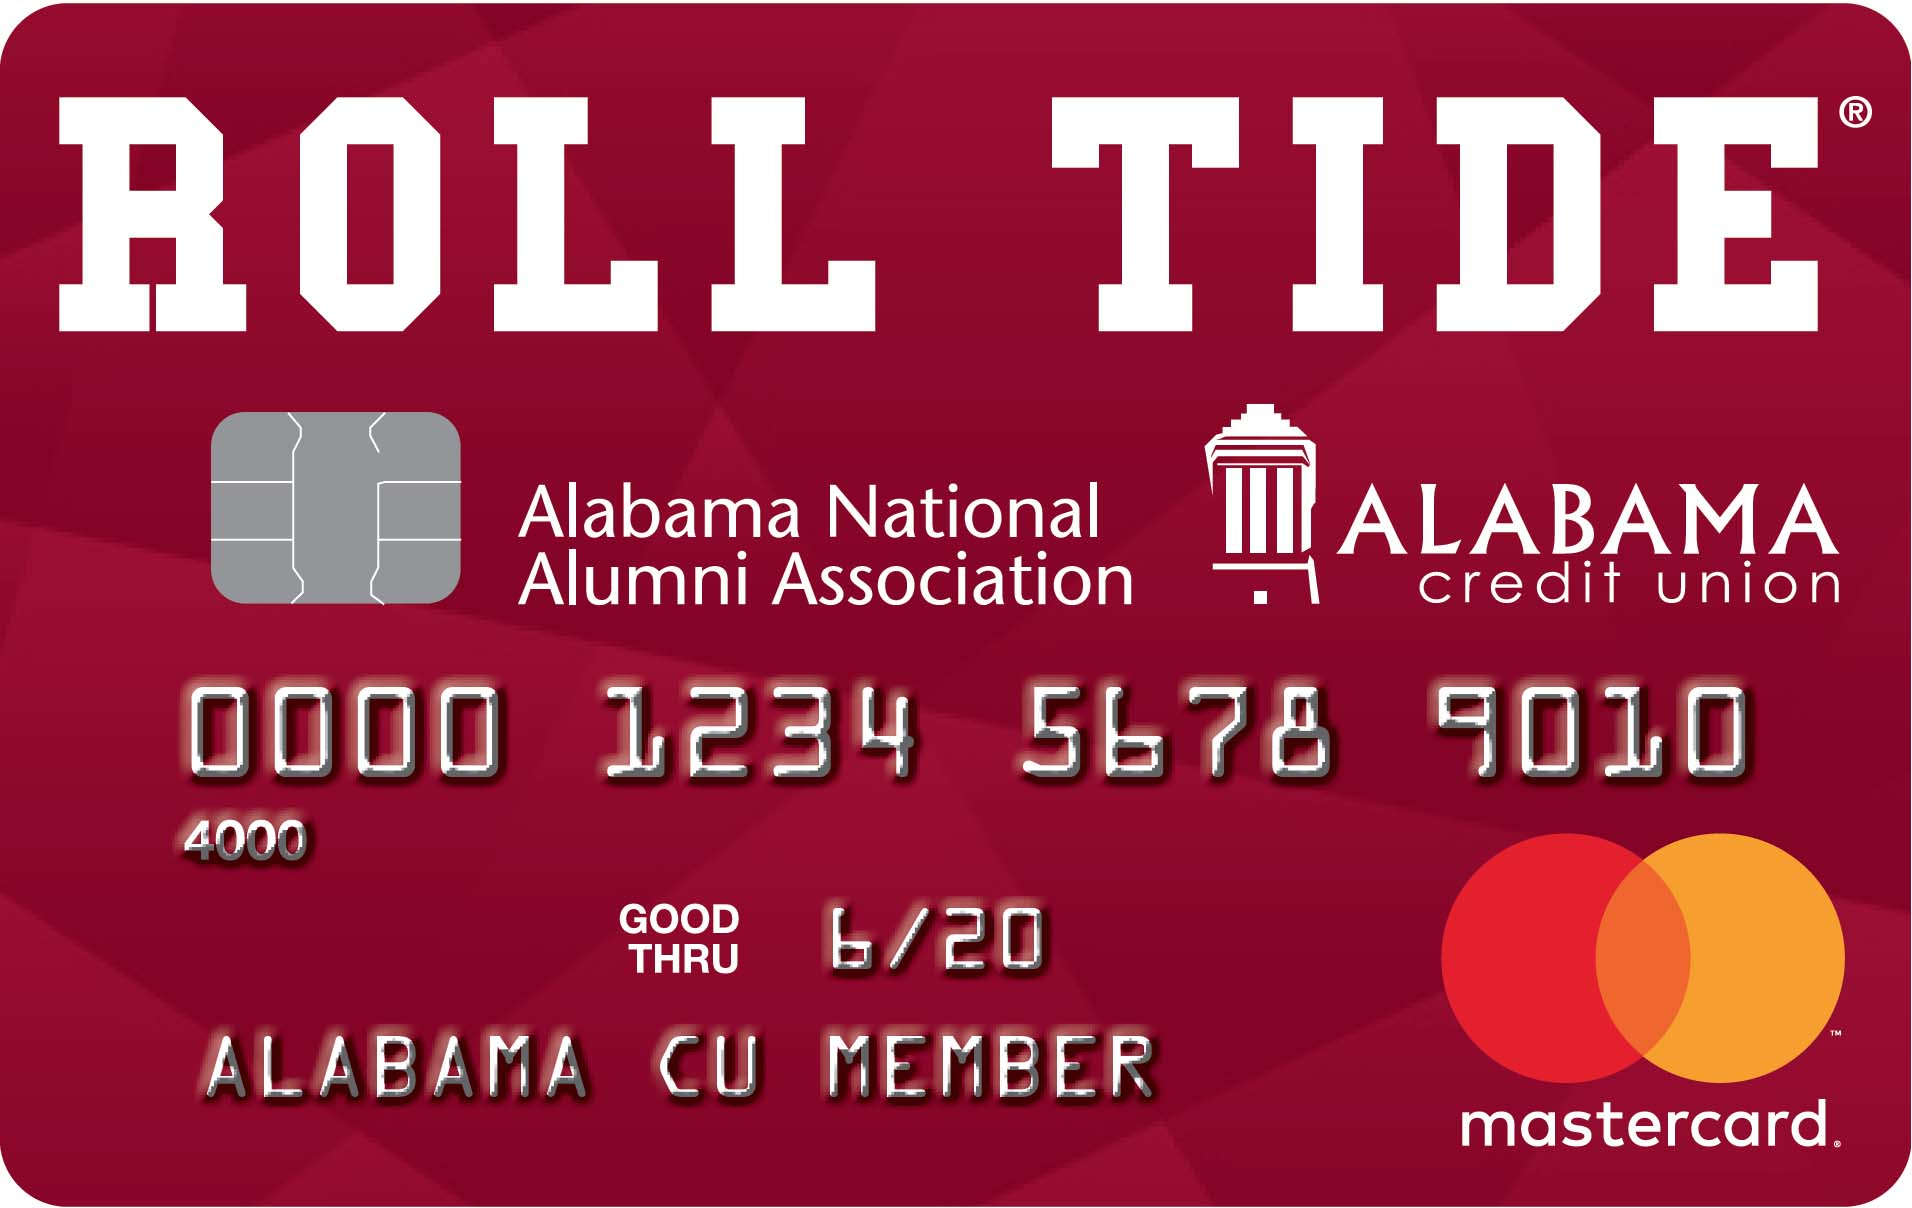 Item: A red credit card with Roll Tide in white above